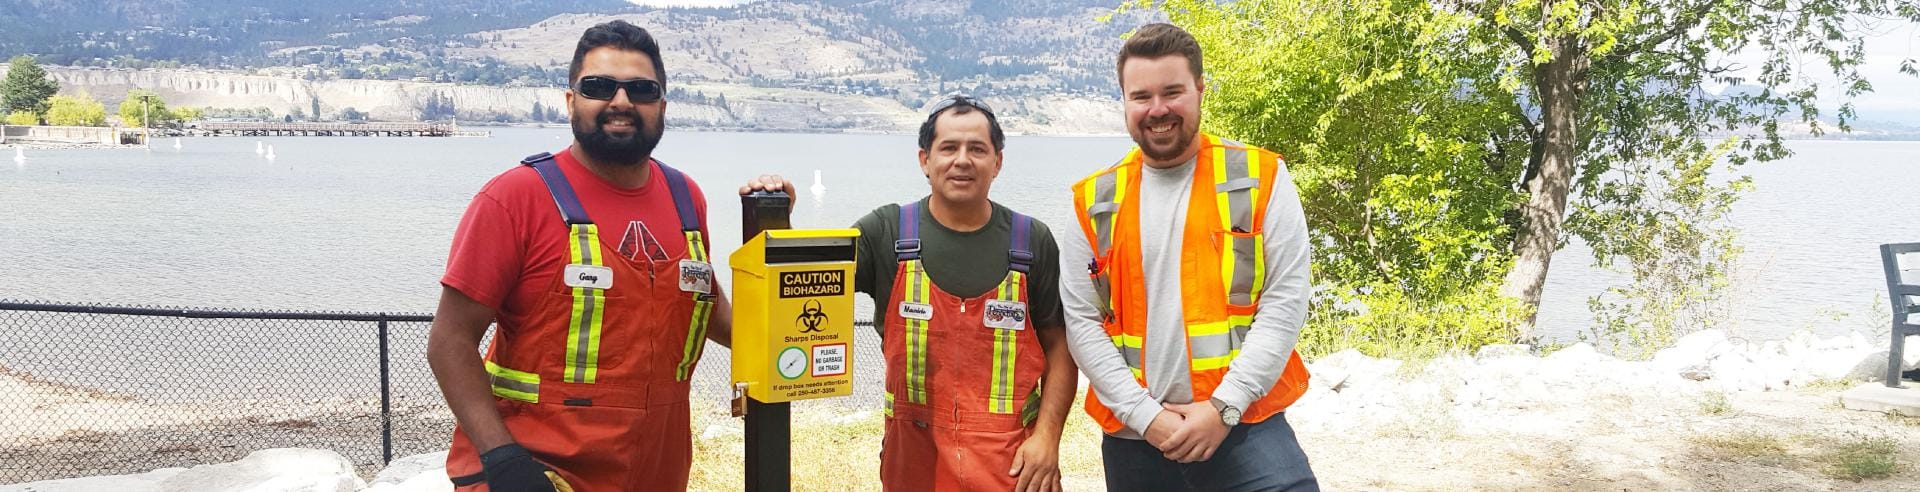 Sharps Disposal Container Okanagan Lake Park